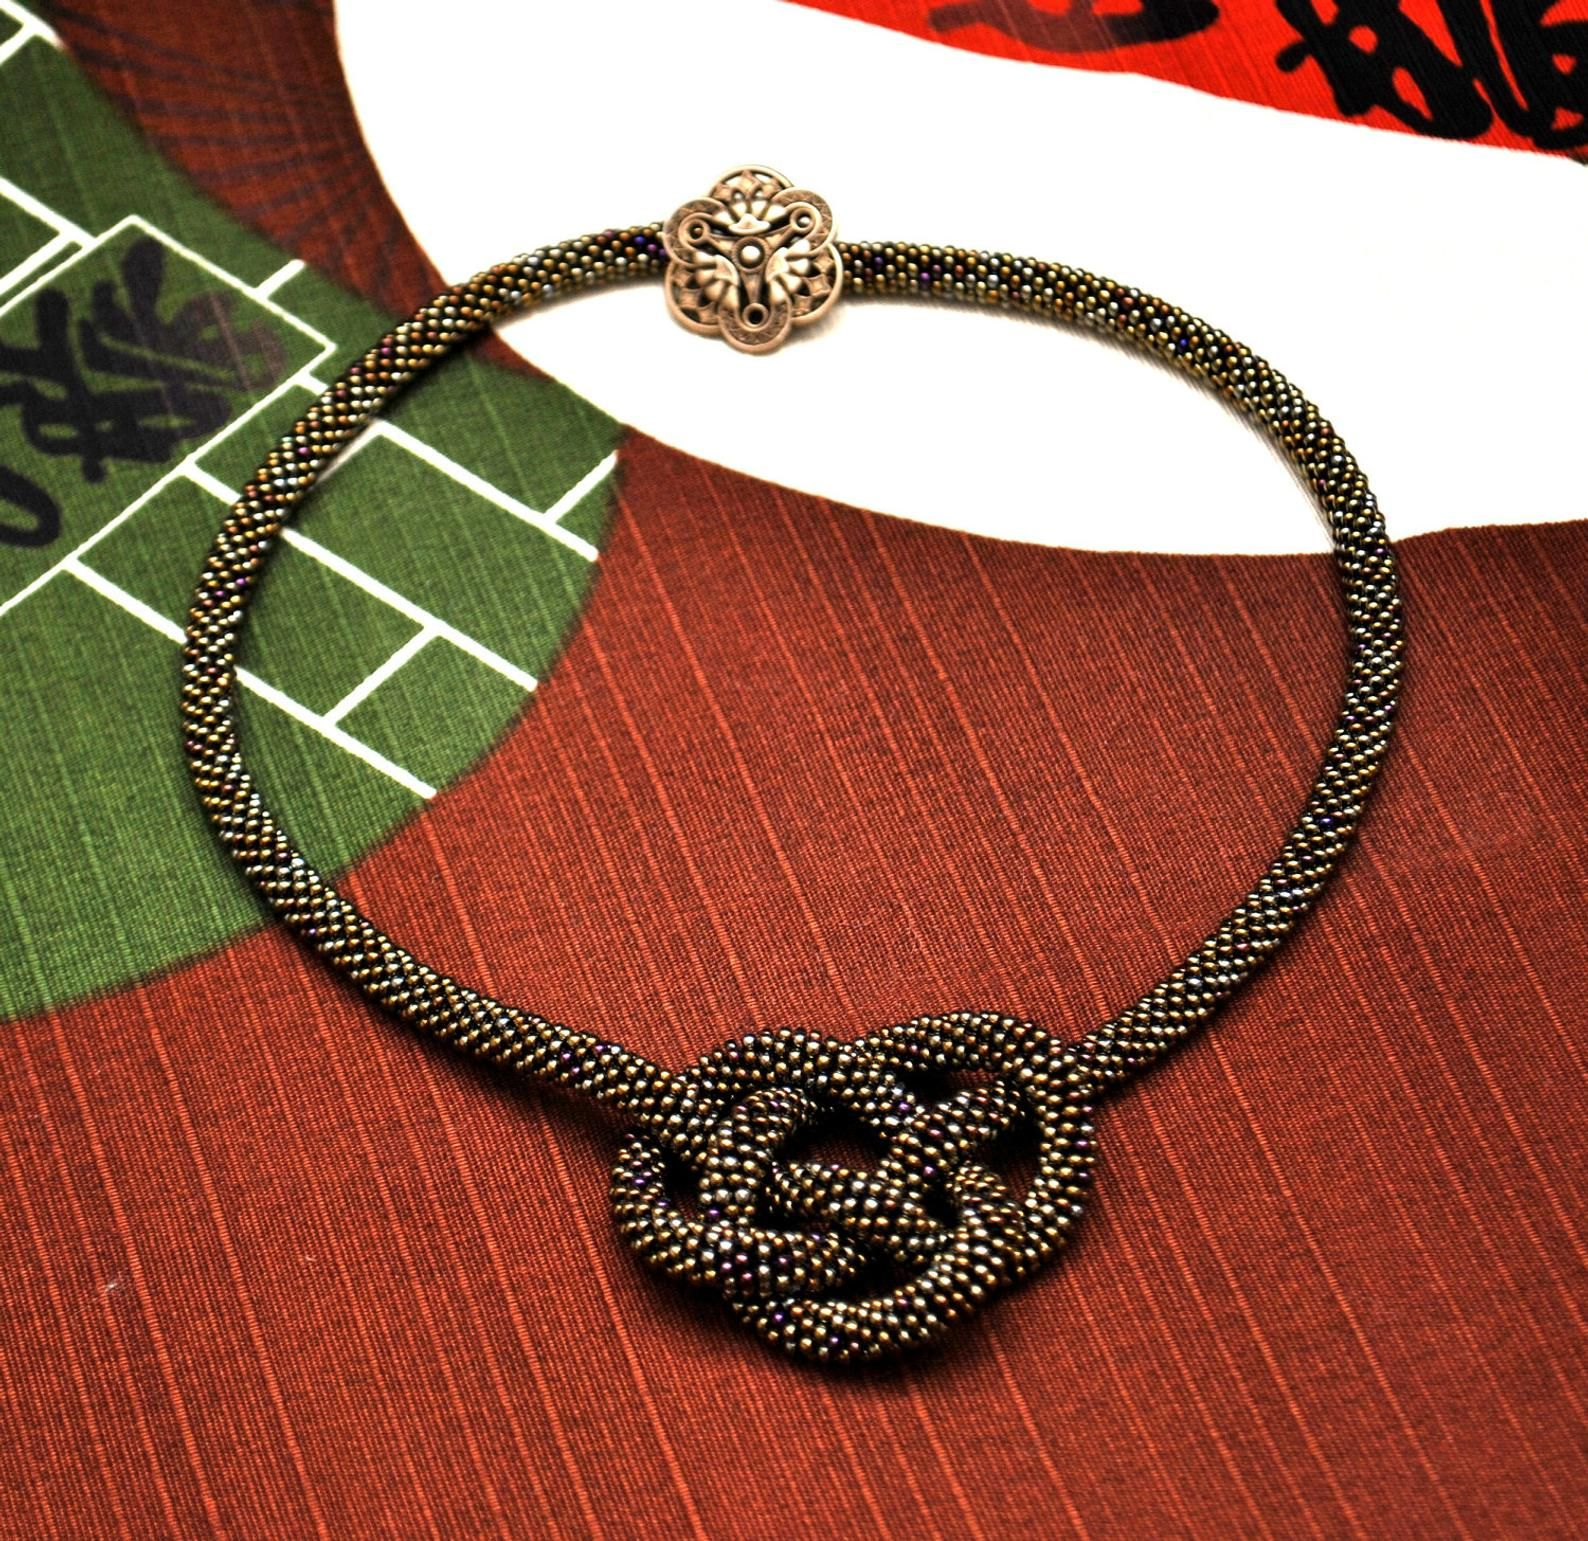 Vintage Inspired Brown Beaded Crochet Rope Knot Necklace / Two in One / Metallic Effect / with Brass Art Deco Button Clasp FREE SHIPPING #ropeknots